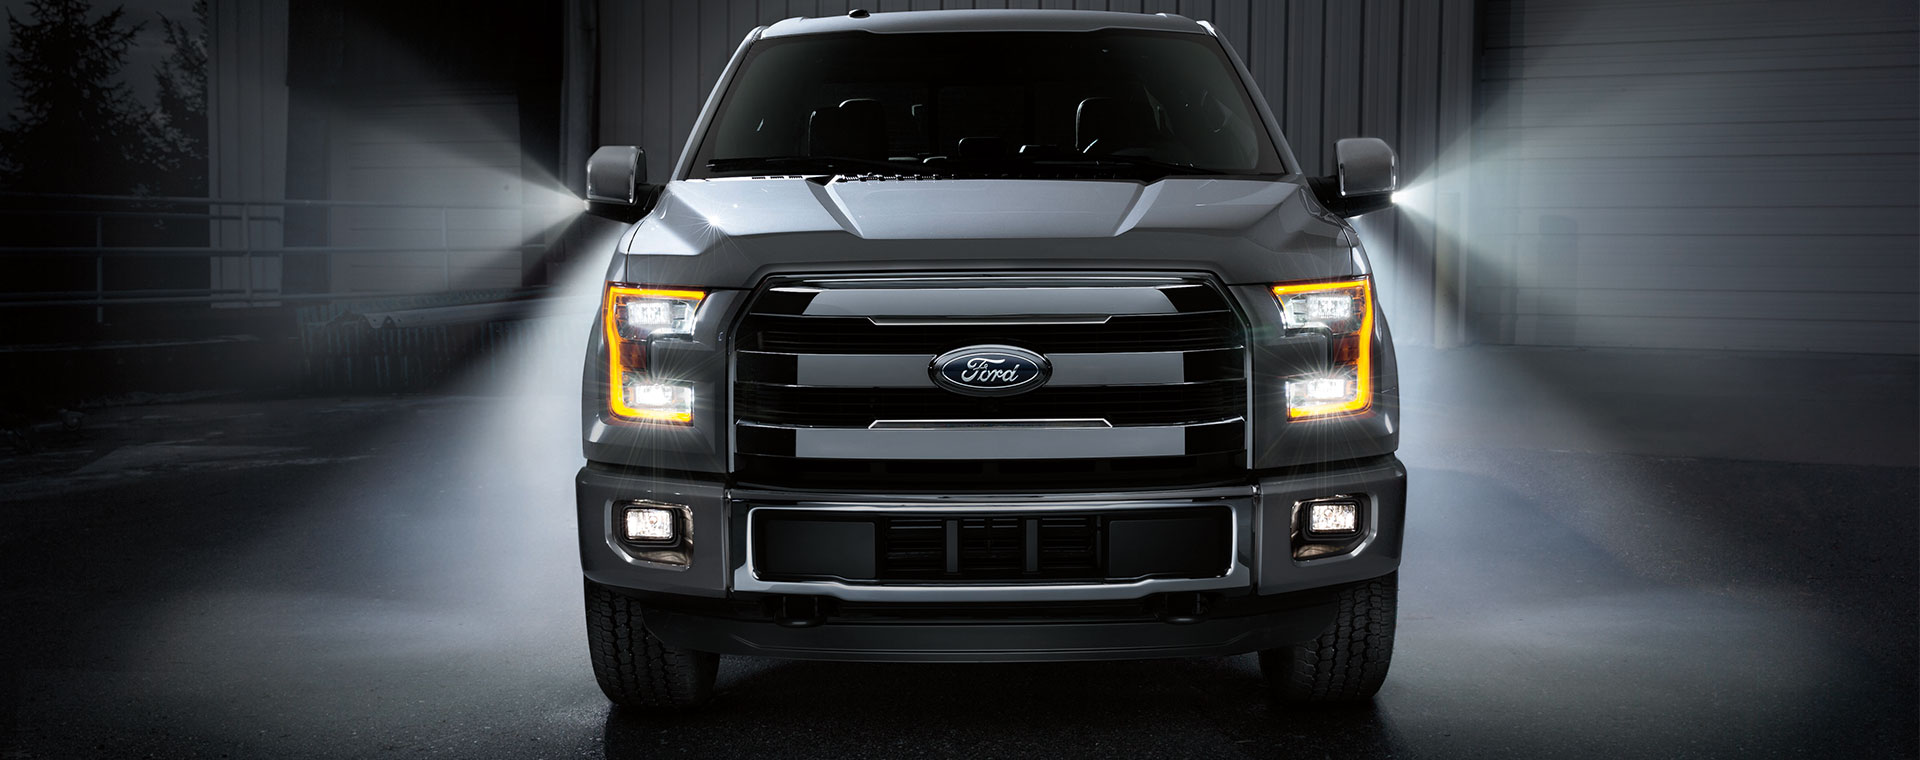 New F-150 inventory at Quirk Ford